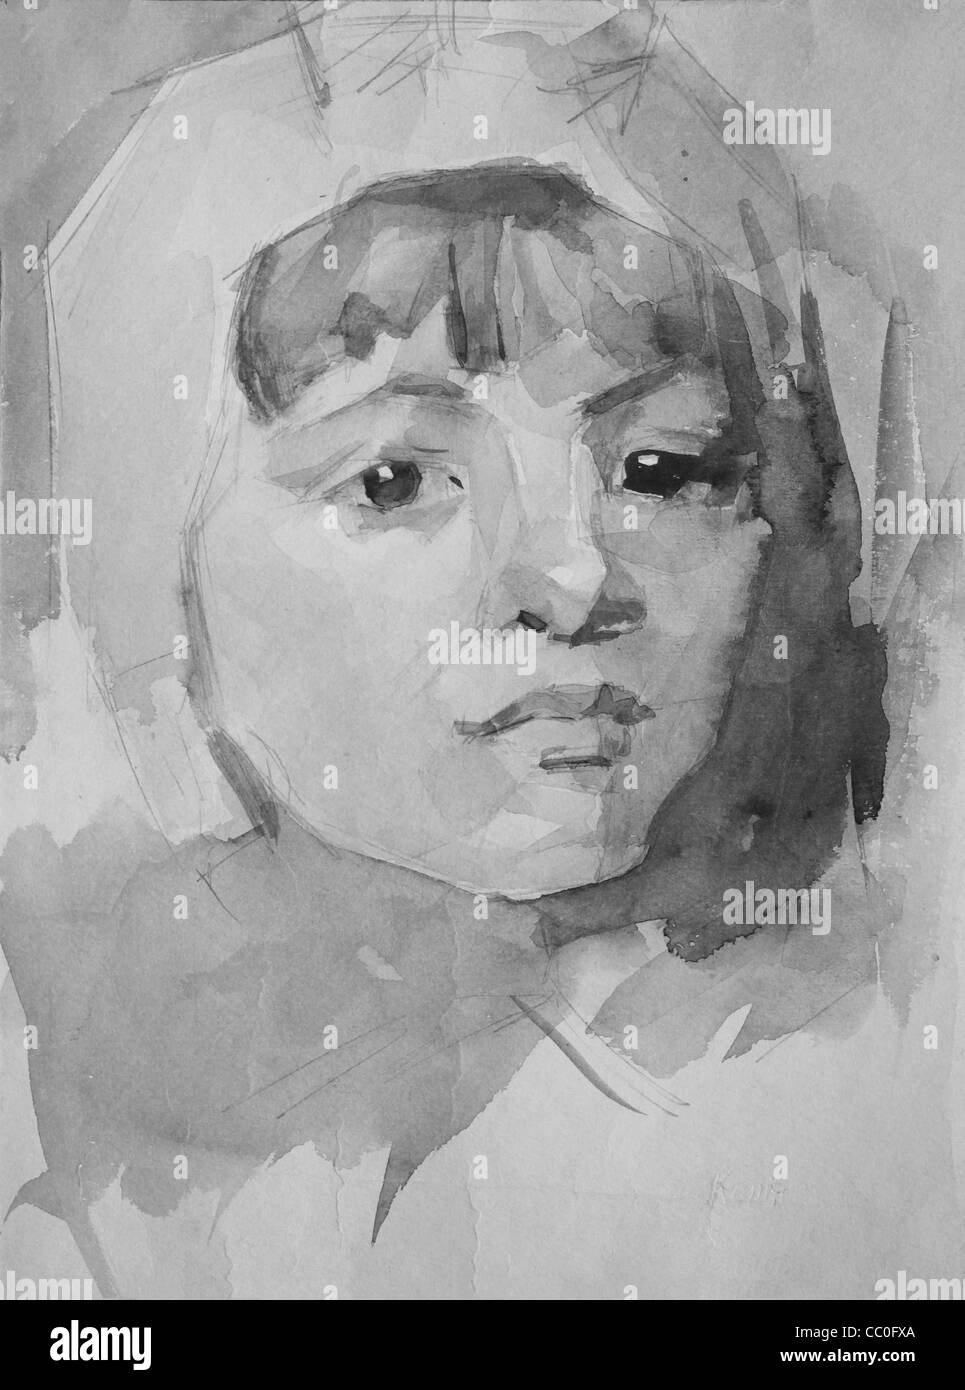 Graphic portrait of a girl painted by pencil and watercolor - Stock Image